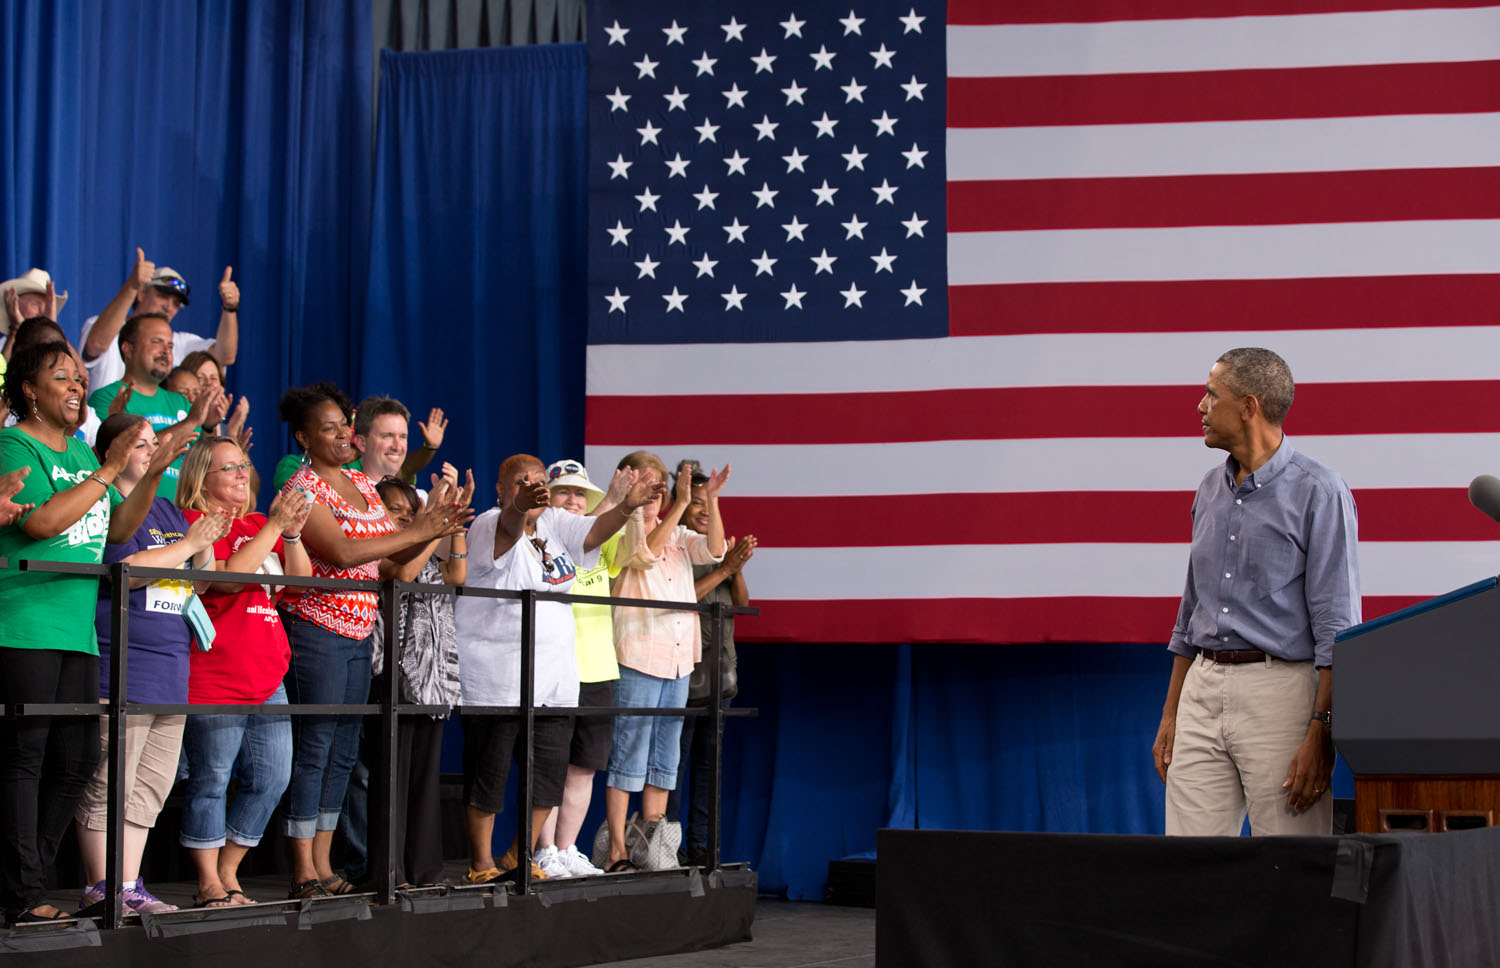 President Barack Obama looks back at the crowd behind him on the stage during remarks at the Milwaukee Laborfest